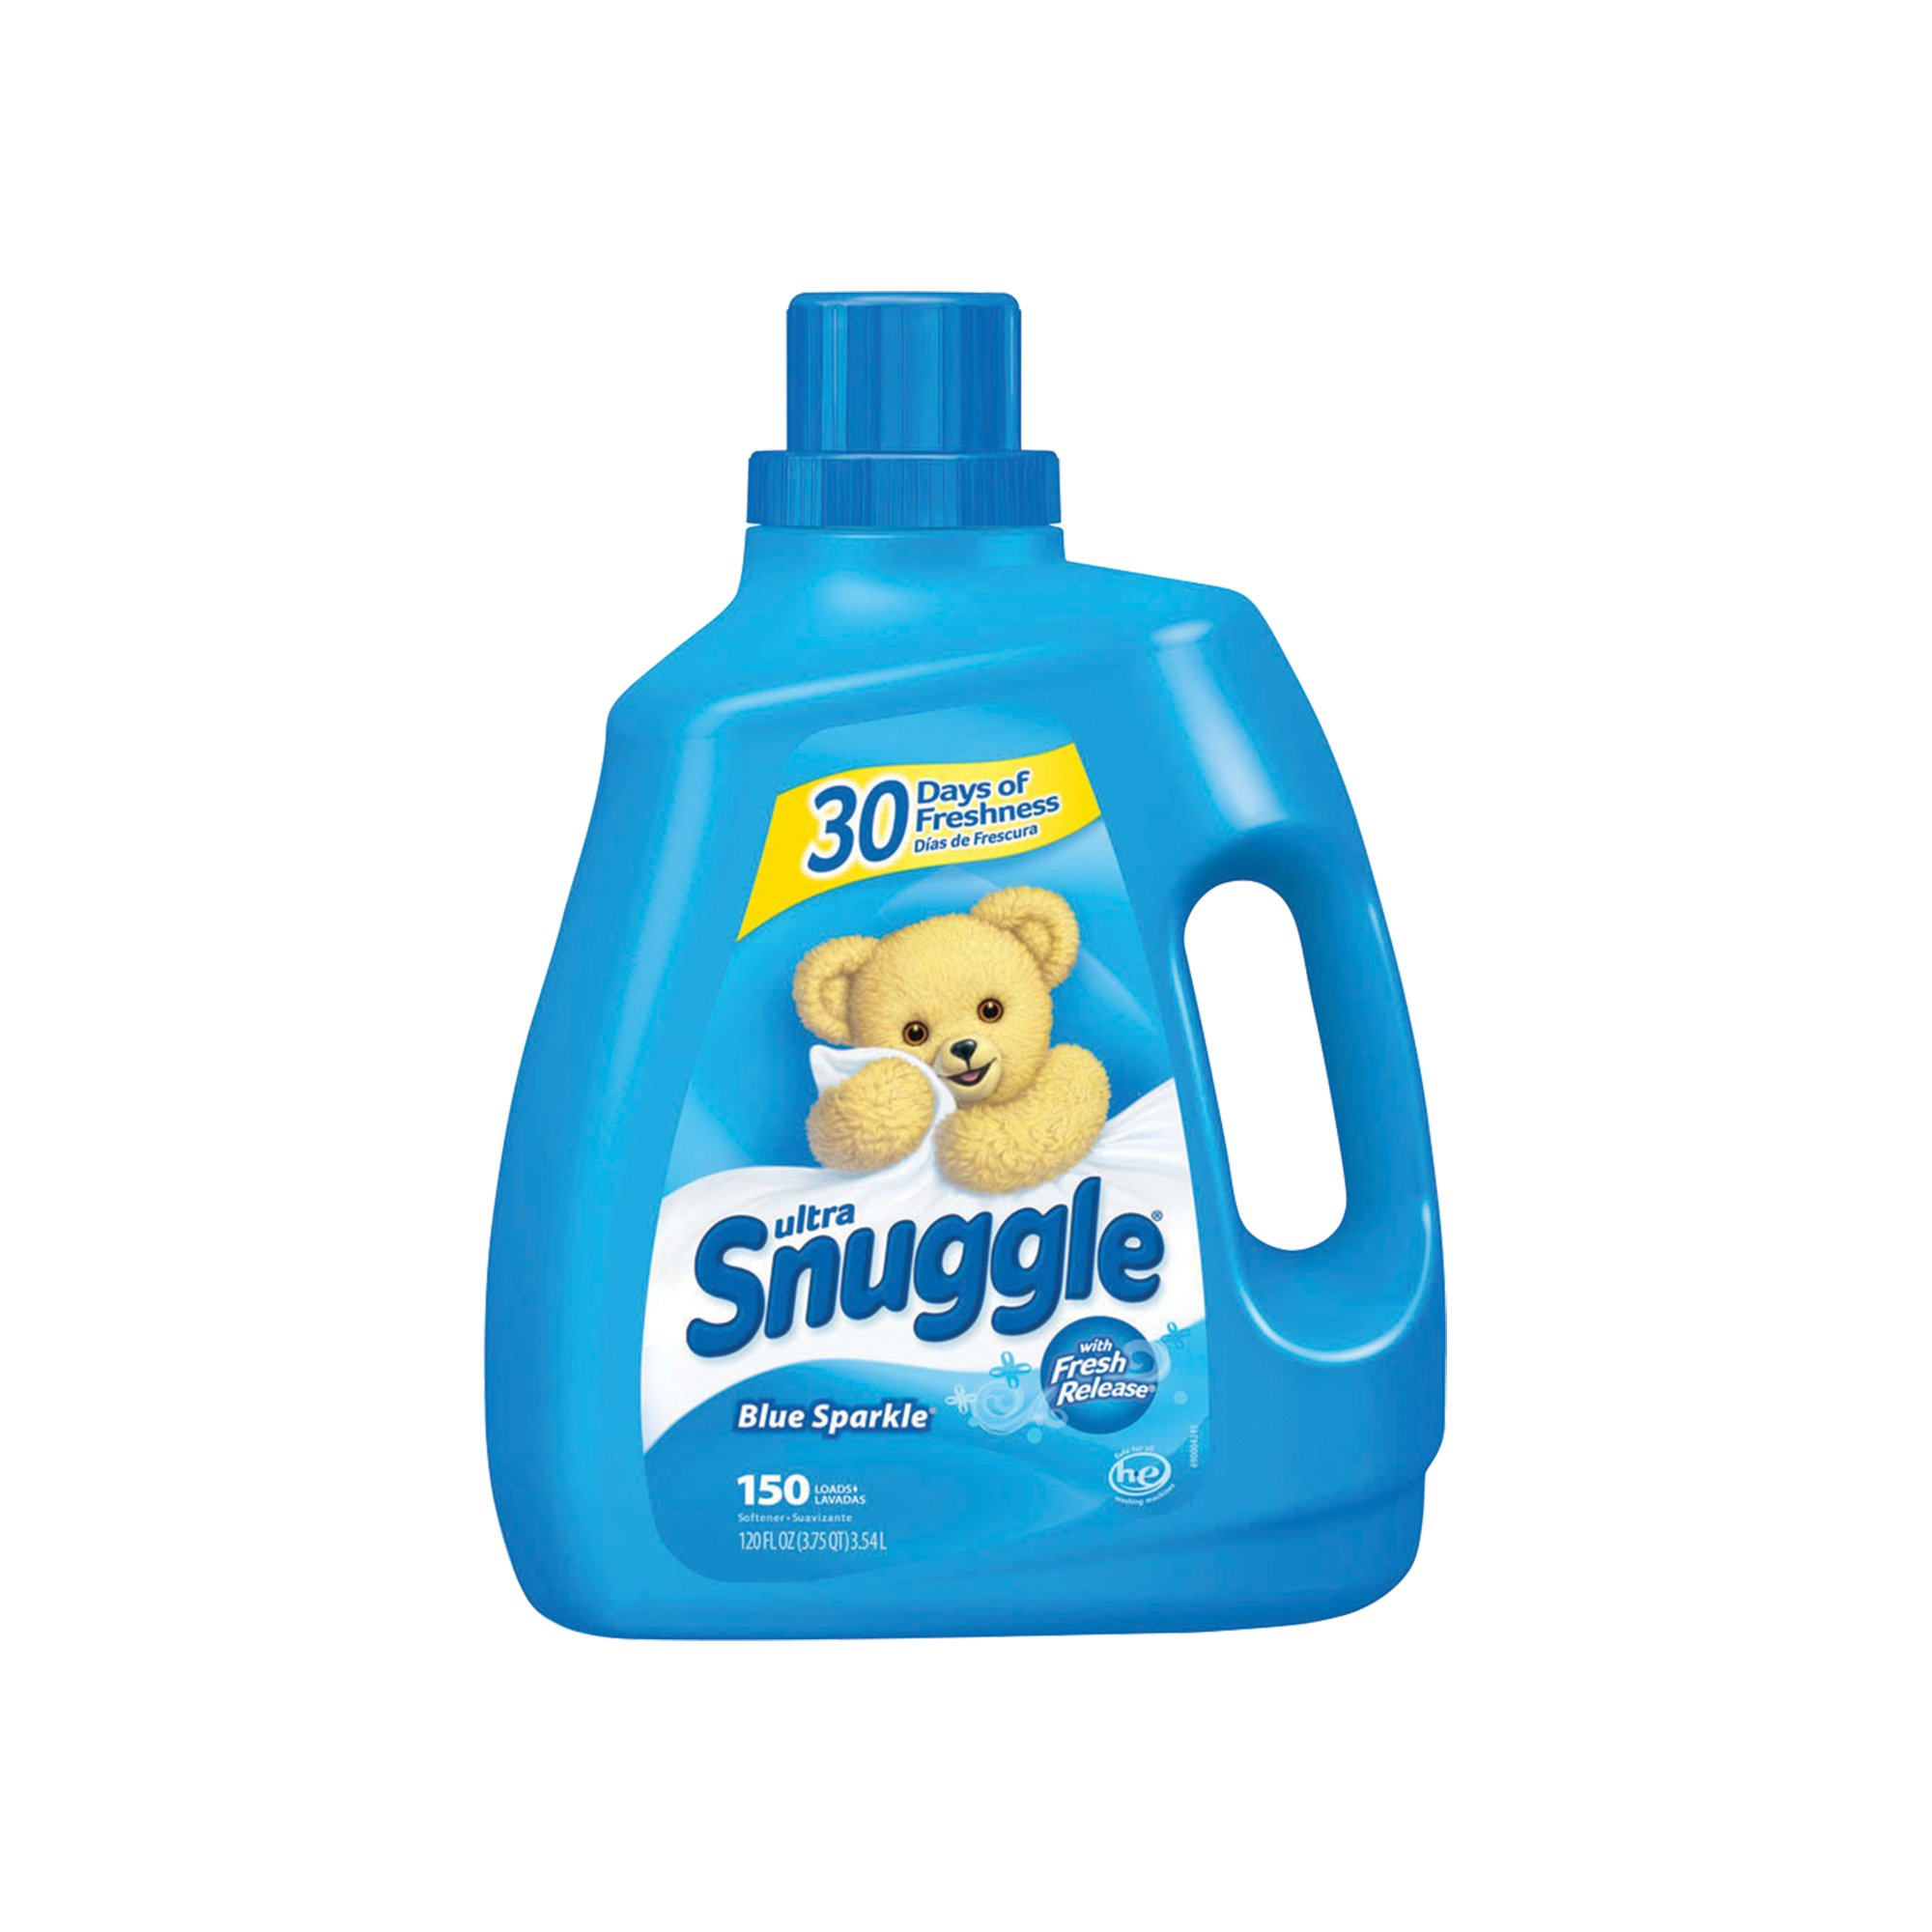 Diversey CB459794 Snuggle Liquid Fabric Softener Blue Sparkle 4 x 120 oz. (150 Loads per Unit) (Pack of 4) by Diversey